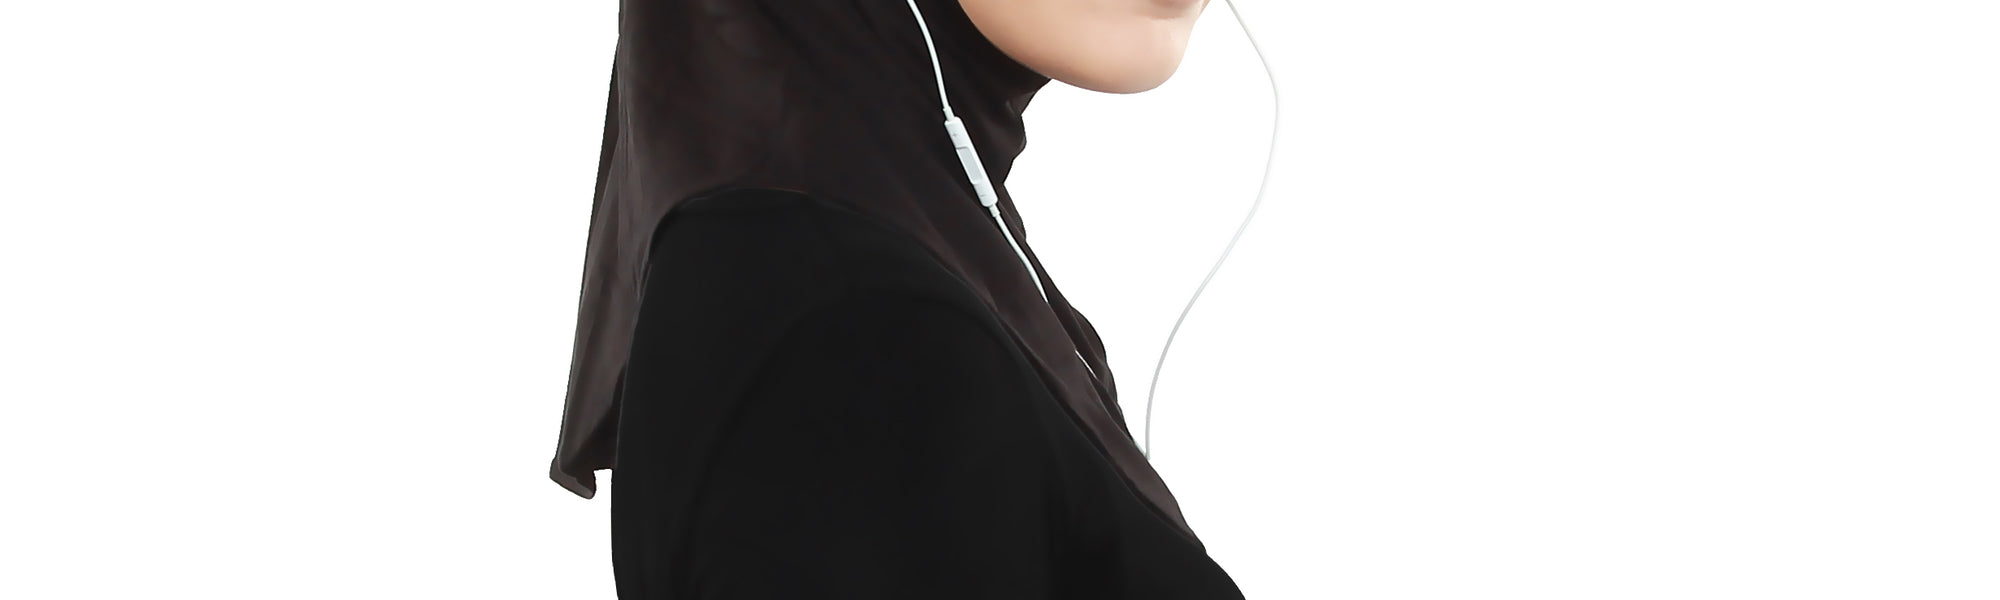 Singapore designer invents the first earphone-friendly hijab - An article by digital media network TheMuslimVibe.com